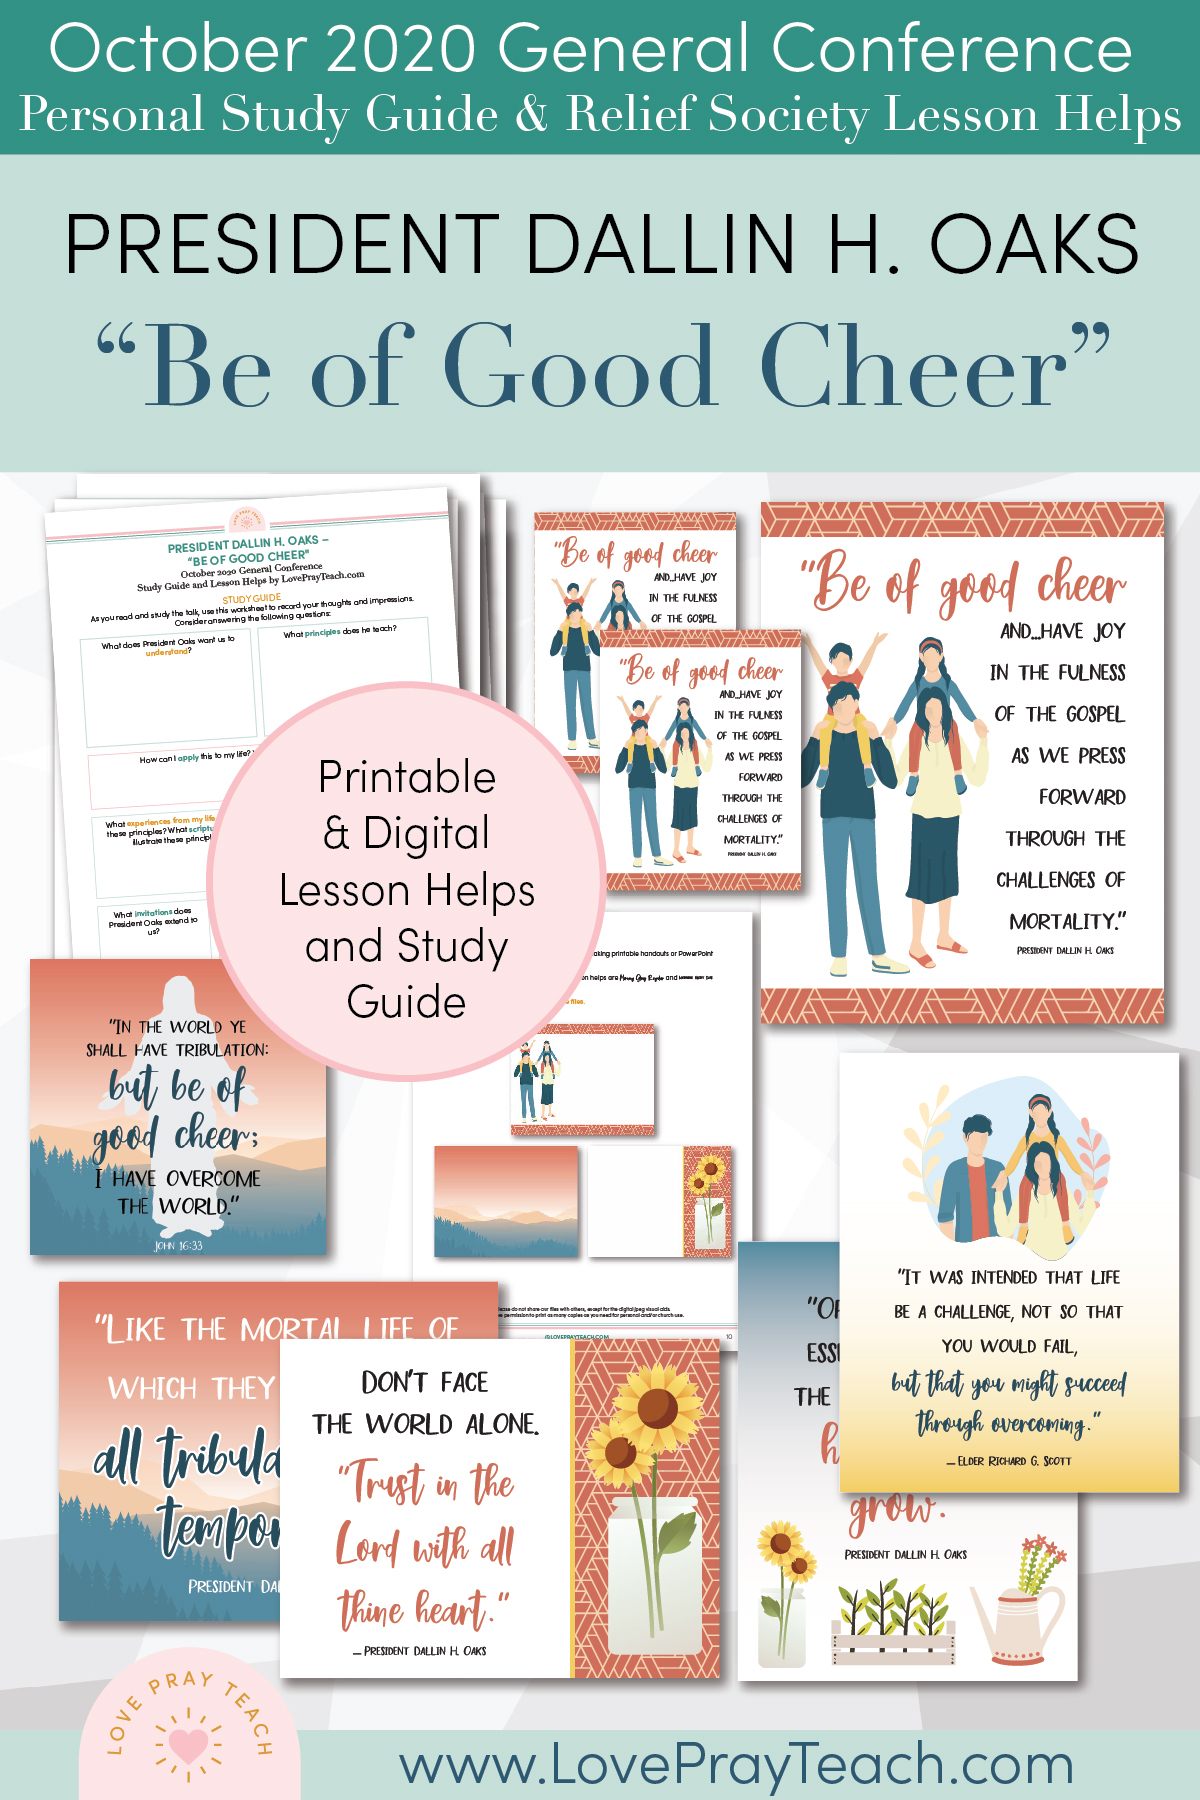 "October 2020 General Conference: President Dallin H. Oaks - ""Be of Good Cheer"" Printable Study Guide and Lesson Helps for Latter-day Saints"